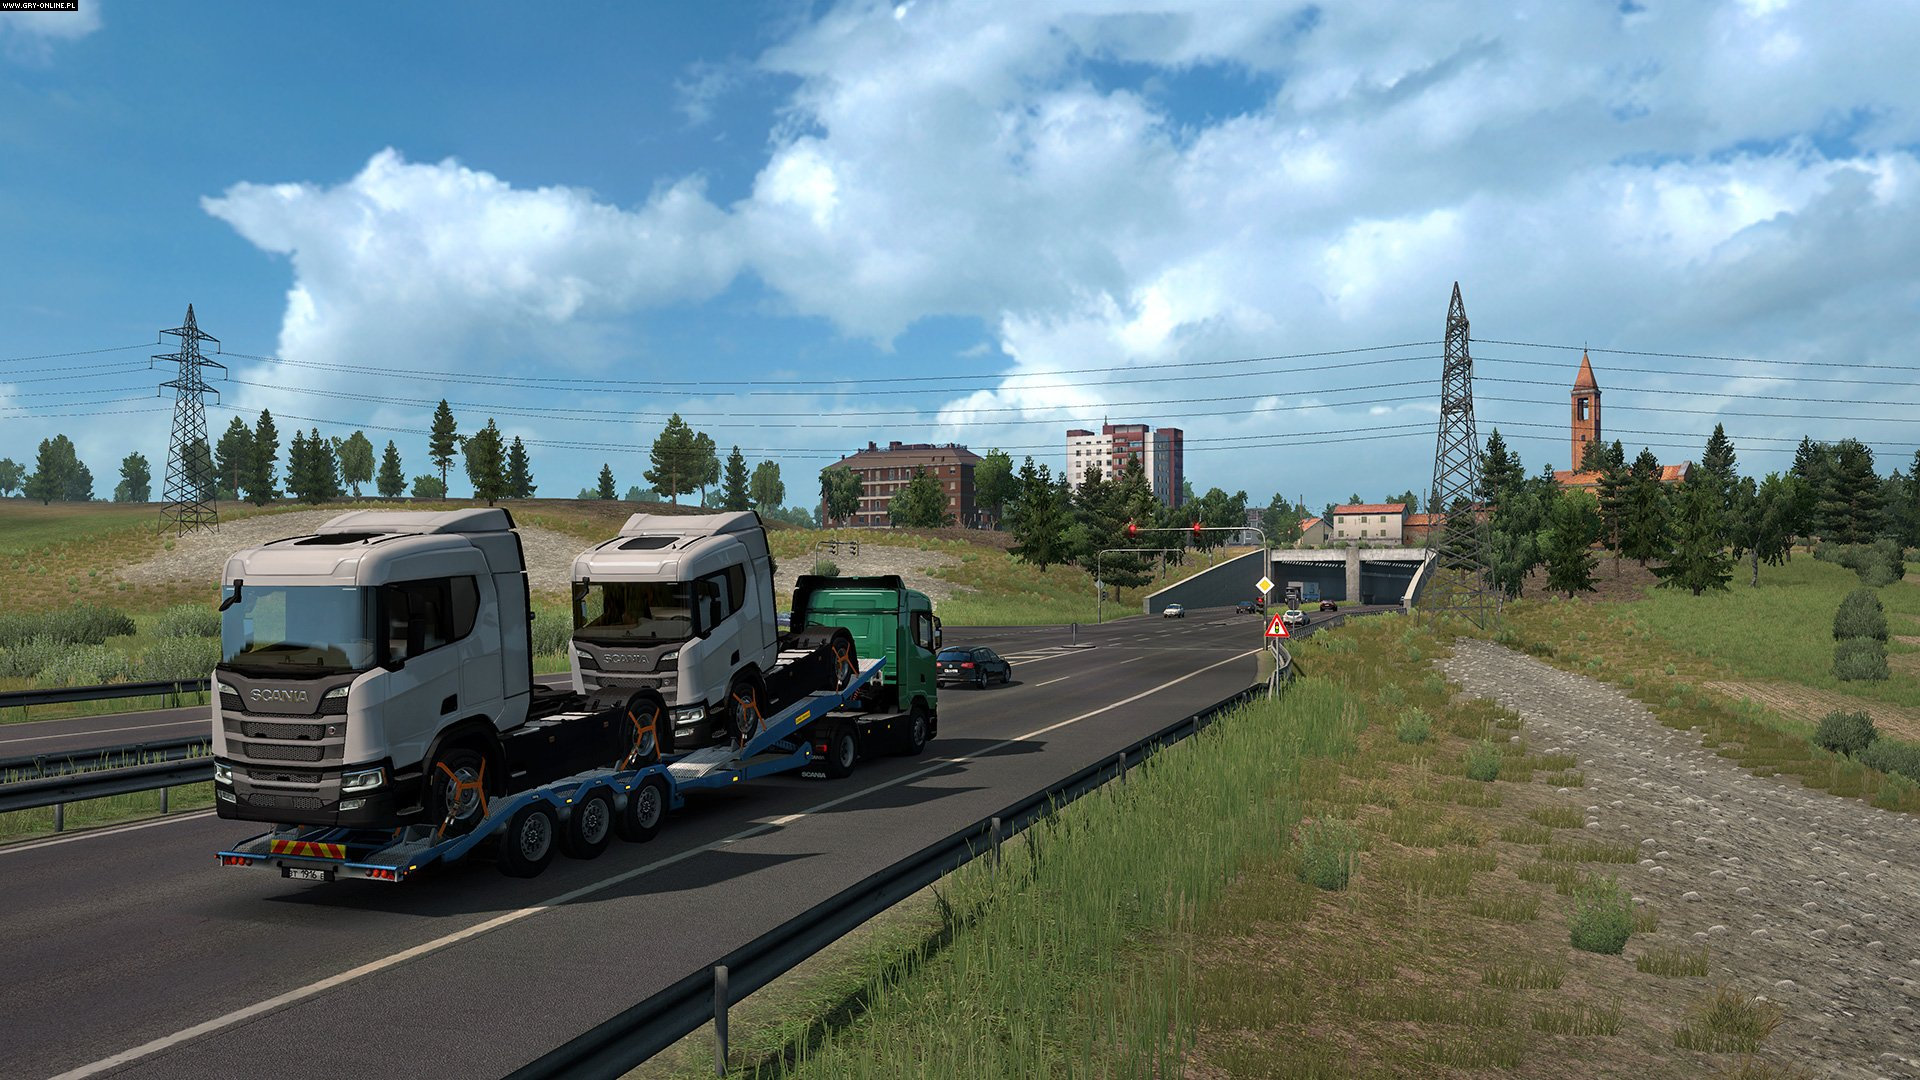 Euro Truck Simulator 2: Road to the Black Sea PC Games Image 12/15, SCS Software